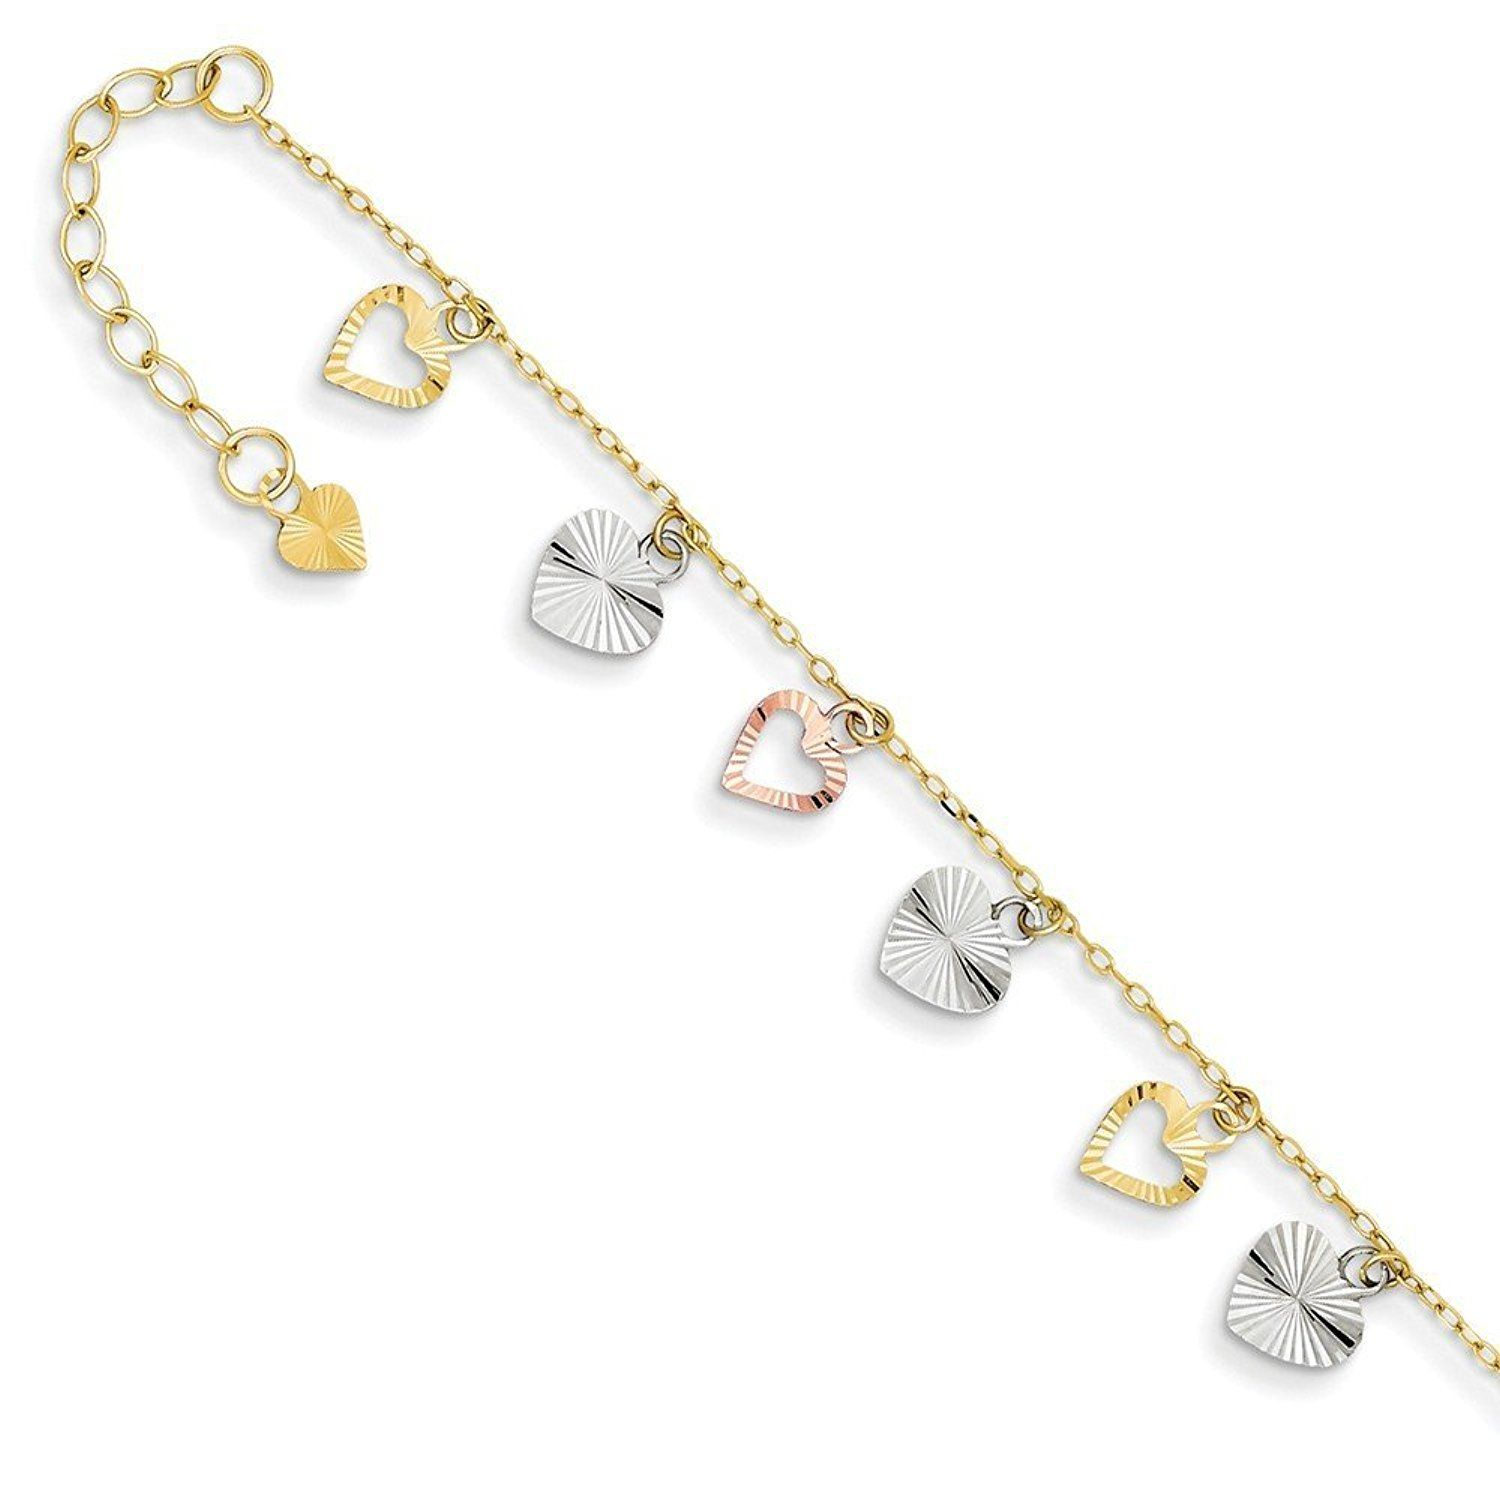 gold inch swarovski heart made bracelets elements pin bracelet to crystal anklet ankle with